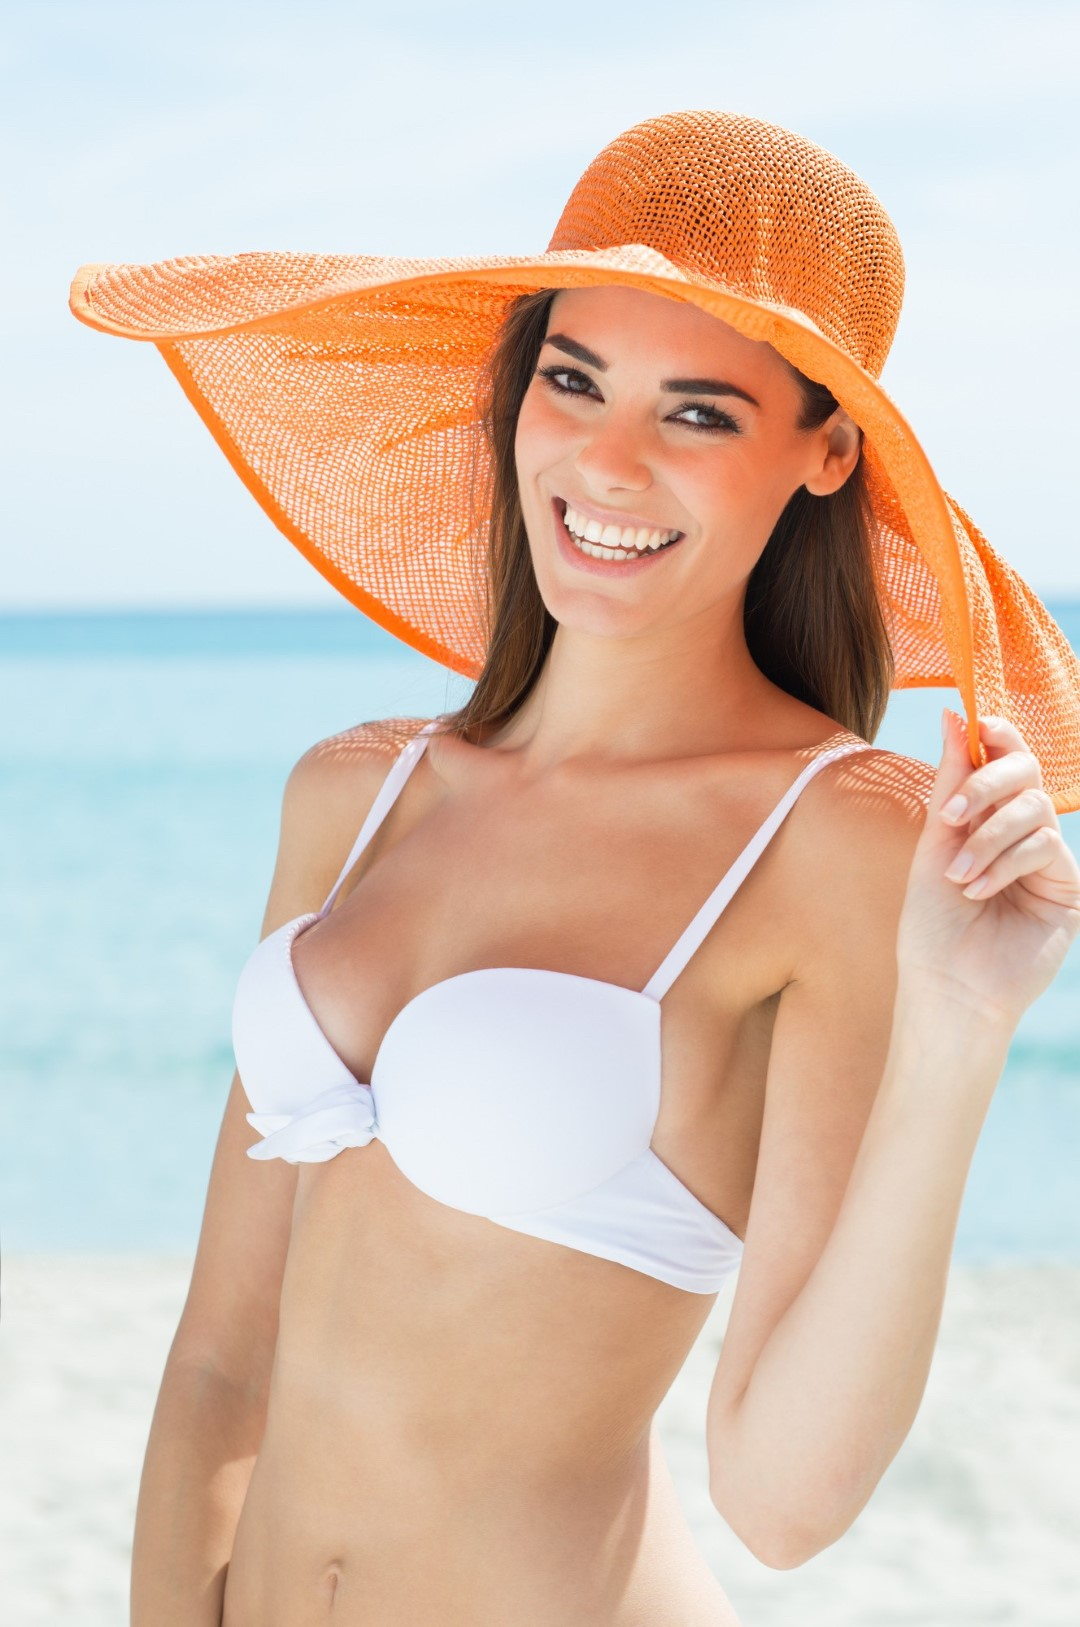 Sunscreen: does SPF matter and which one should I choose?